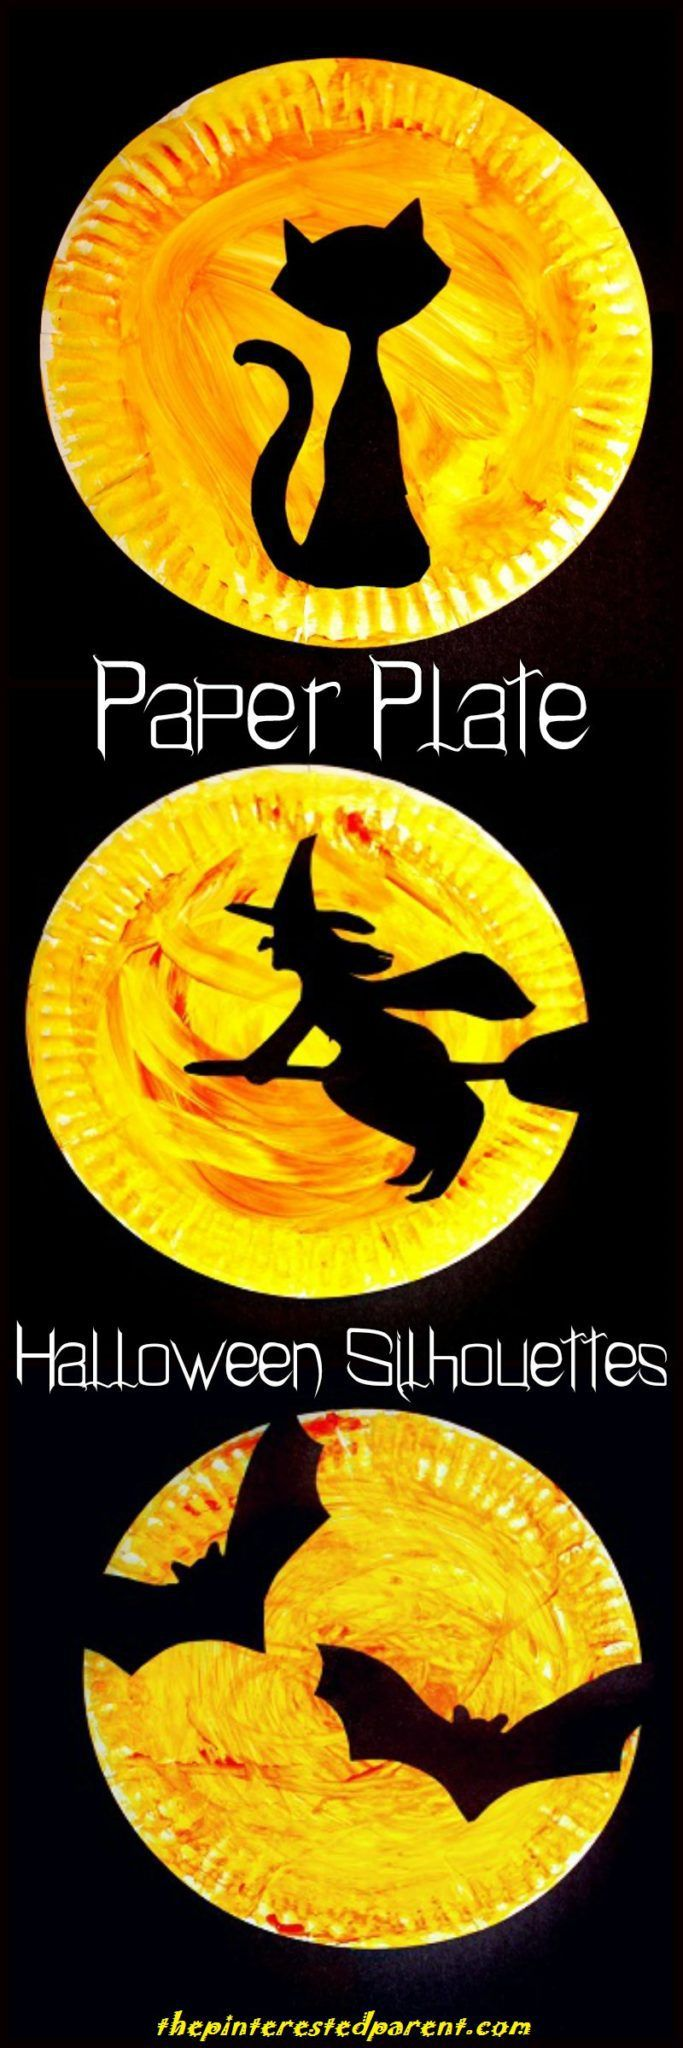 Halloween Paper Plate Silhouettes with printable template . Choose from a black cat, a witch or bat Halloween silhouette - Halloween arts and crafts for kids.